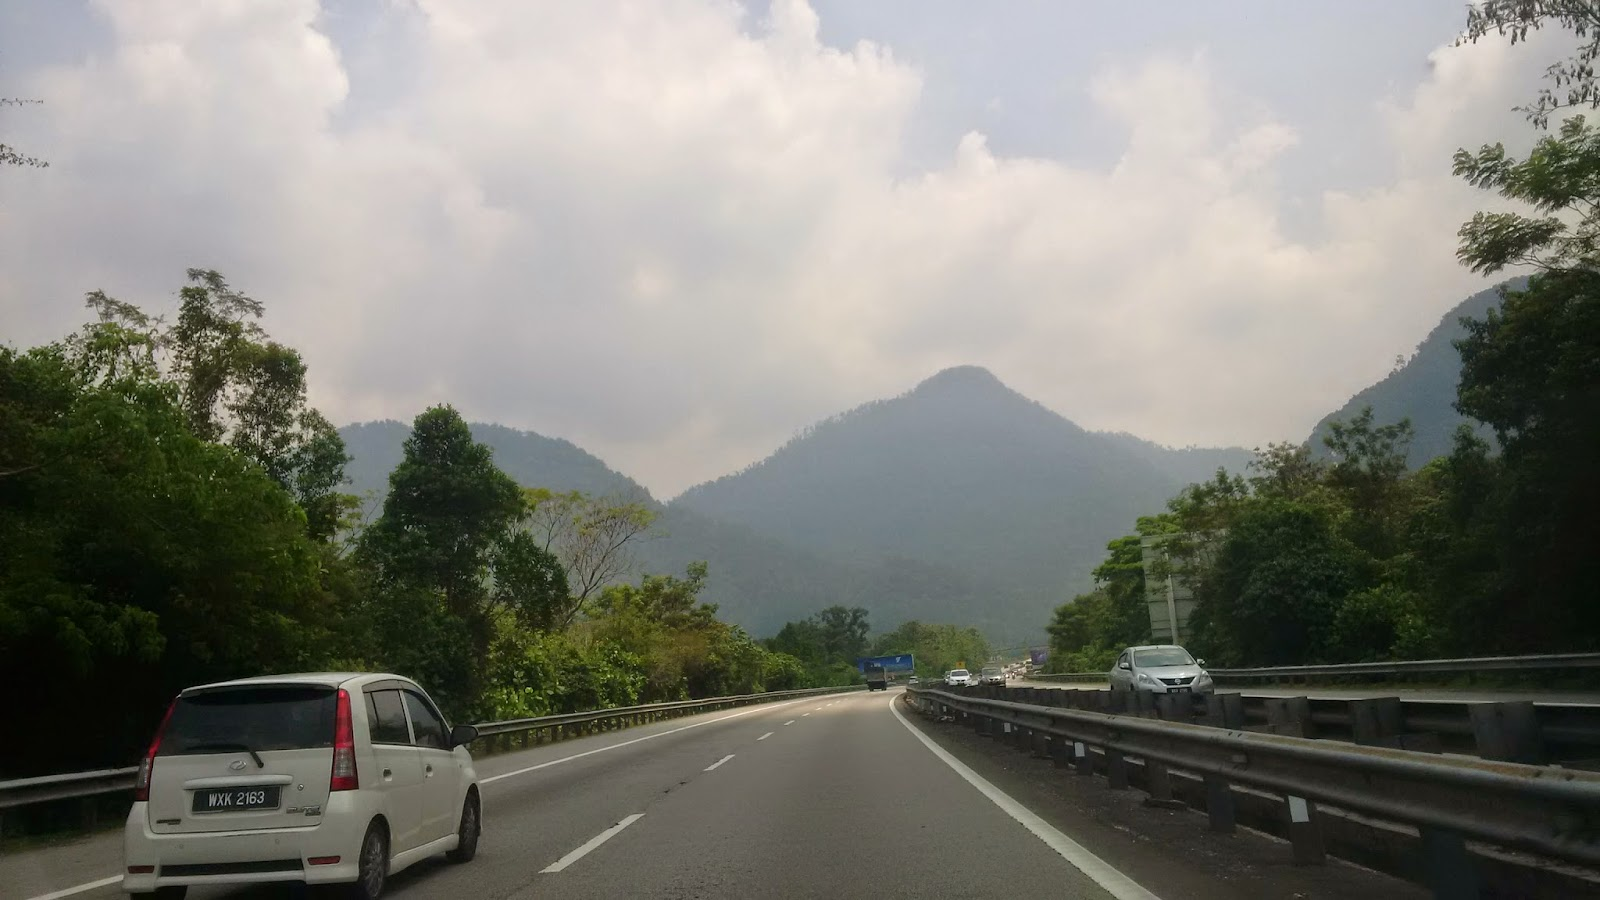 malaysia itinerary travel, malaysia landforms, journey north to south, alor setar, alor keroh, melaka, highway journey, images journey, tourist, tourism, travel,